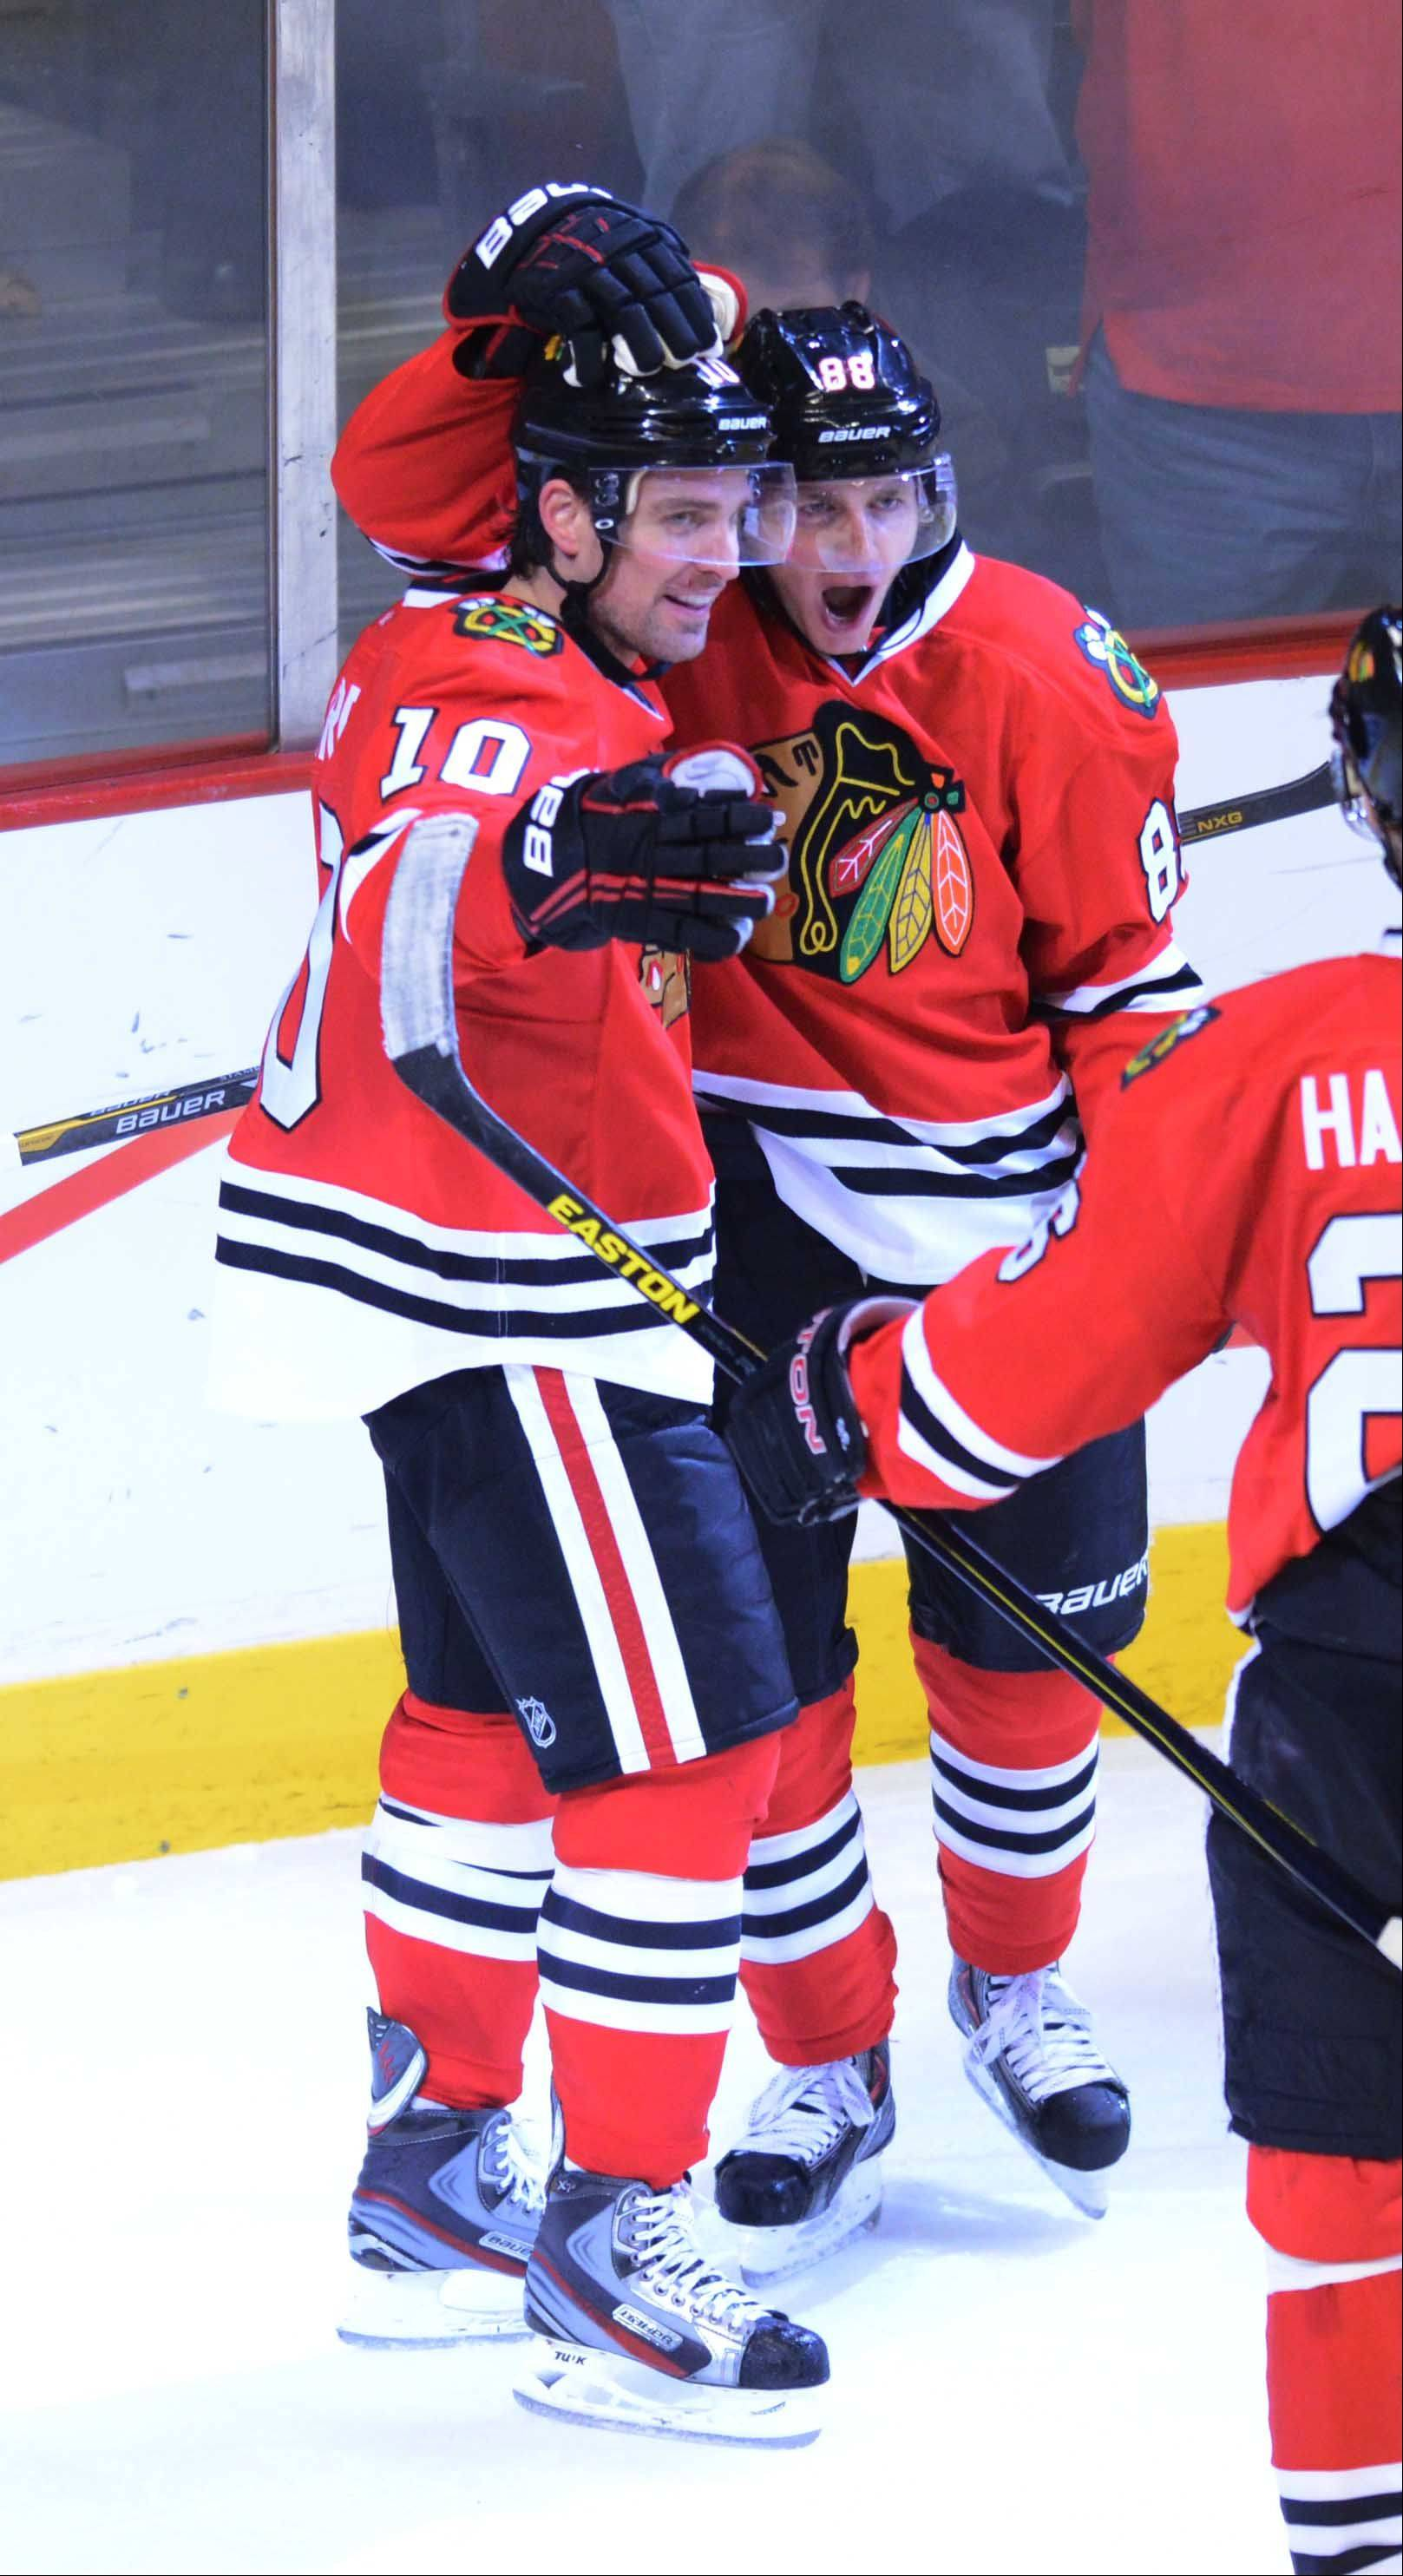 Patrick Sharp, left, and Patrick Kane celebrate a Hawks goal late in the third period. With the 5-2 win over the Minnesota Wild on Friday, the Hawks hit the road with a 2-0 series lead.